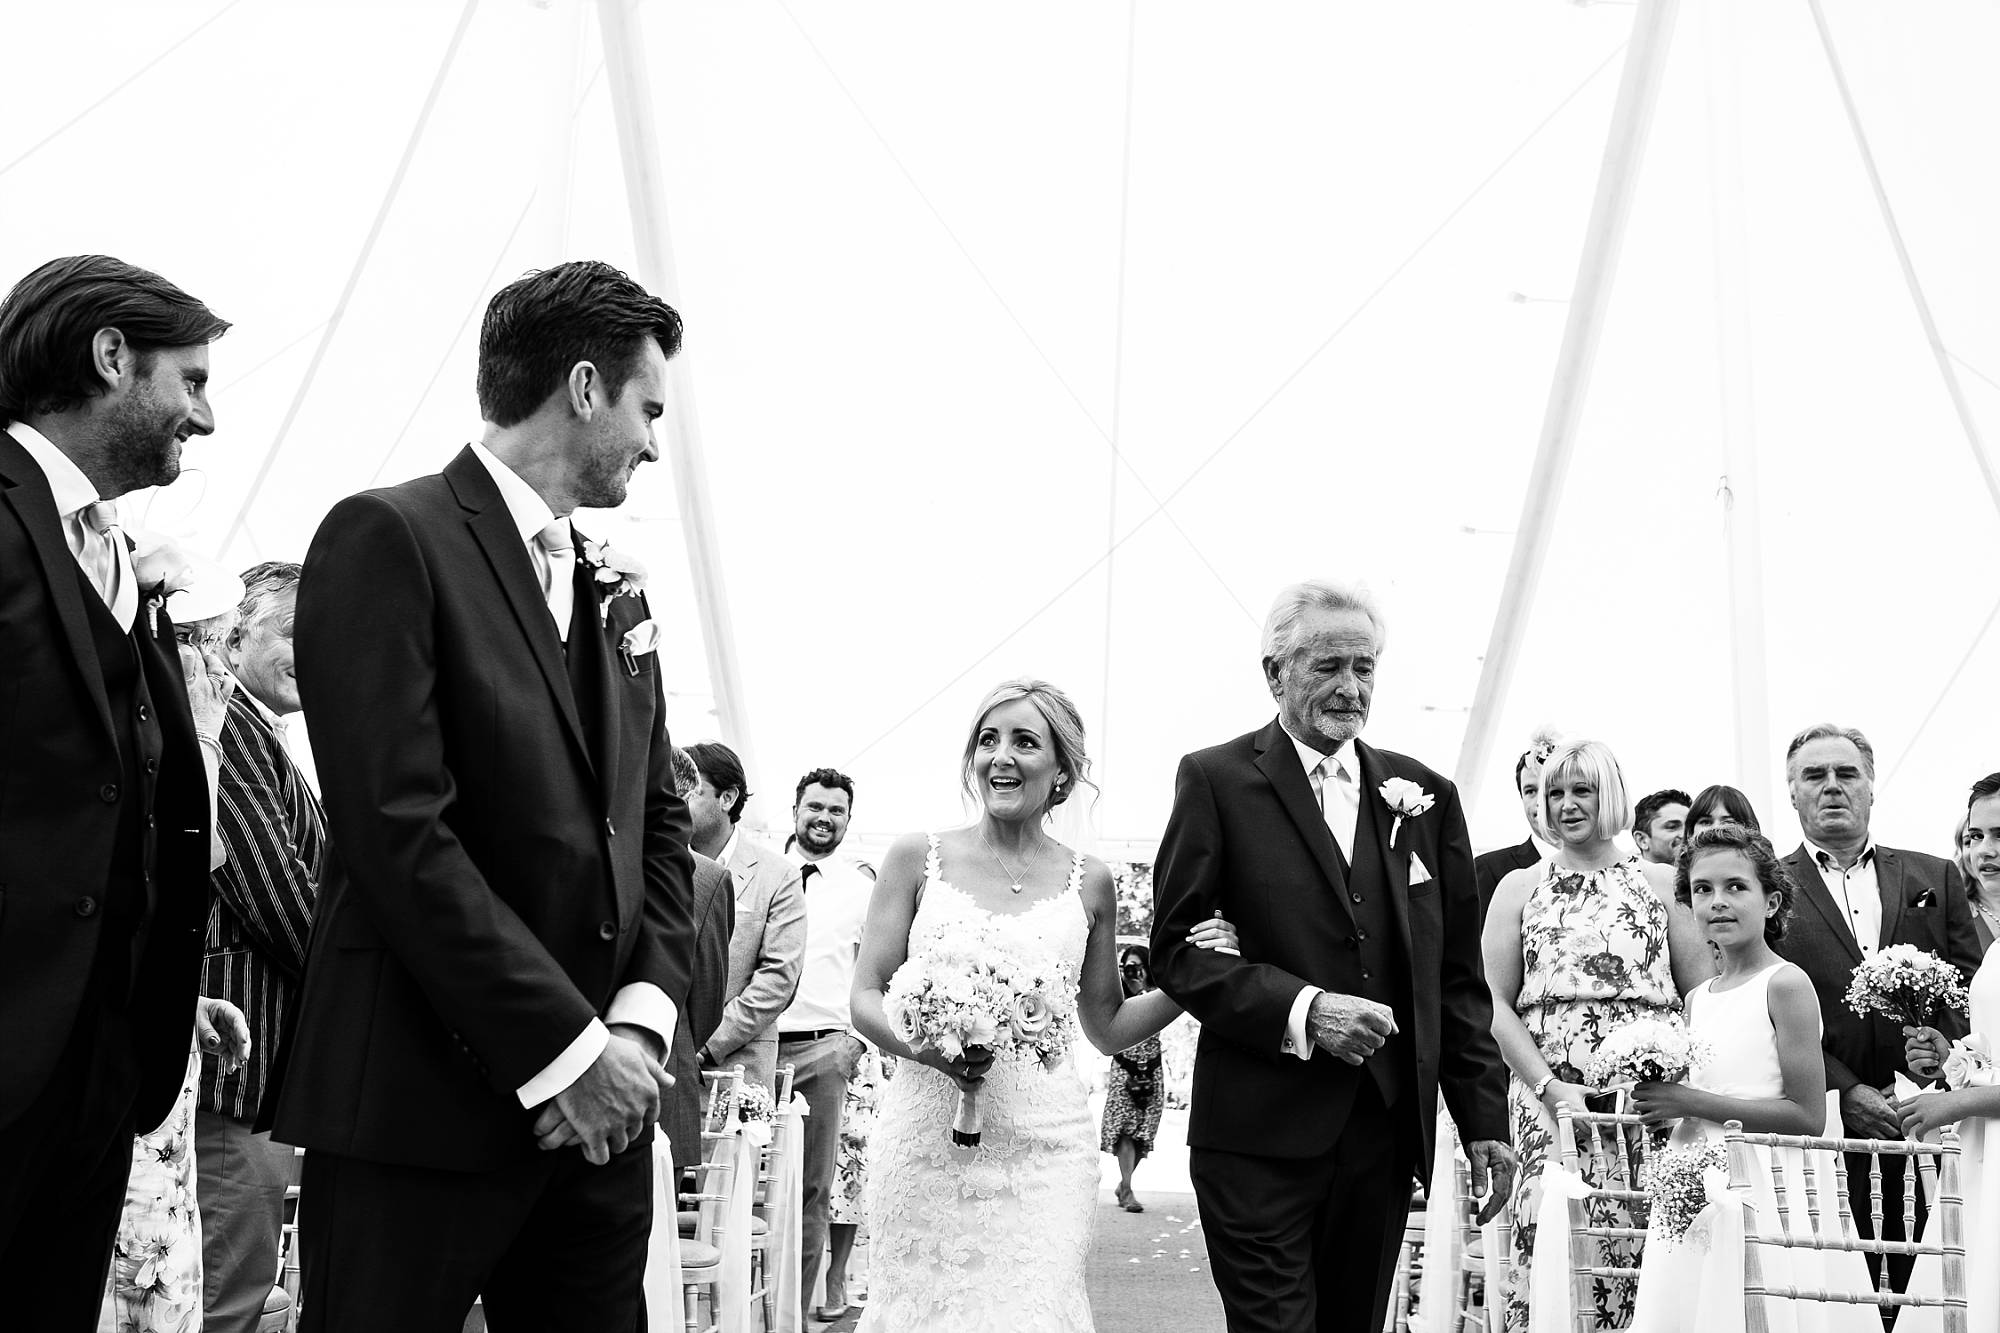 Houchins Essex Wedding Photographer_0030.jpg